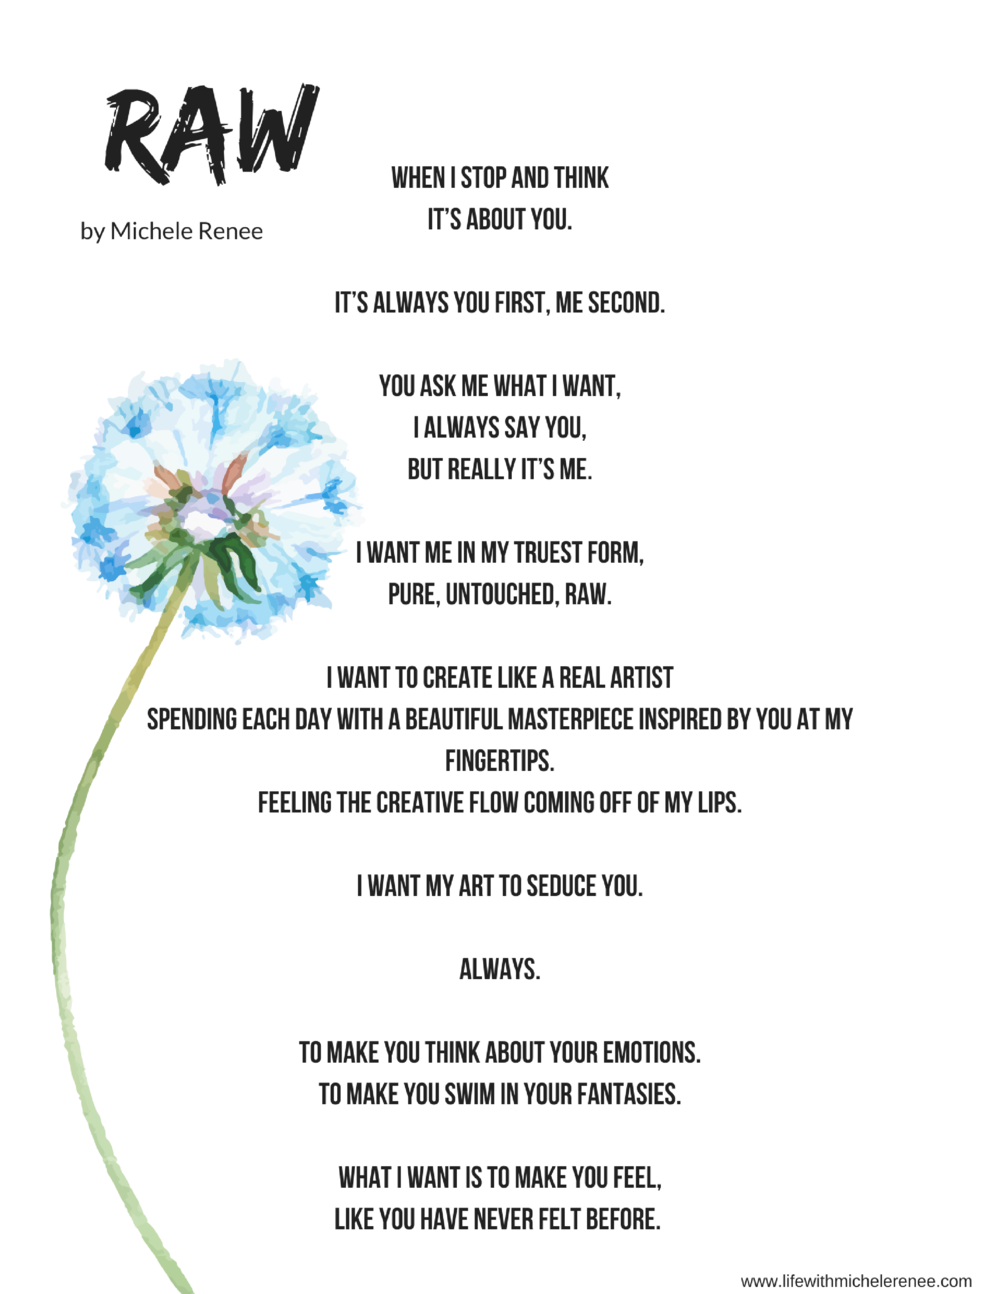 Life With Michele Renee - Raw Poem by Michele Renee